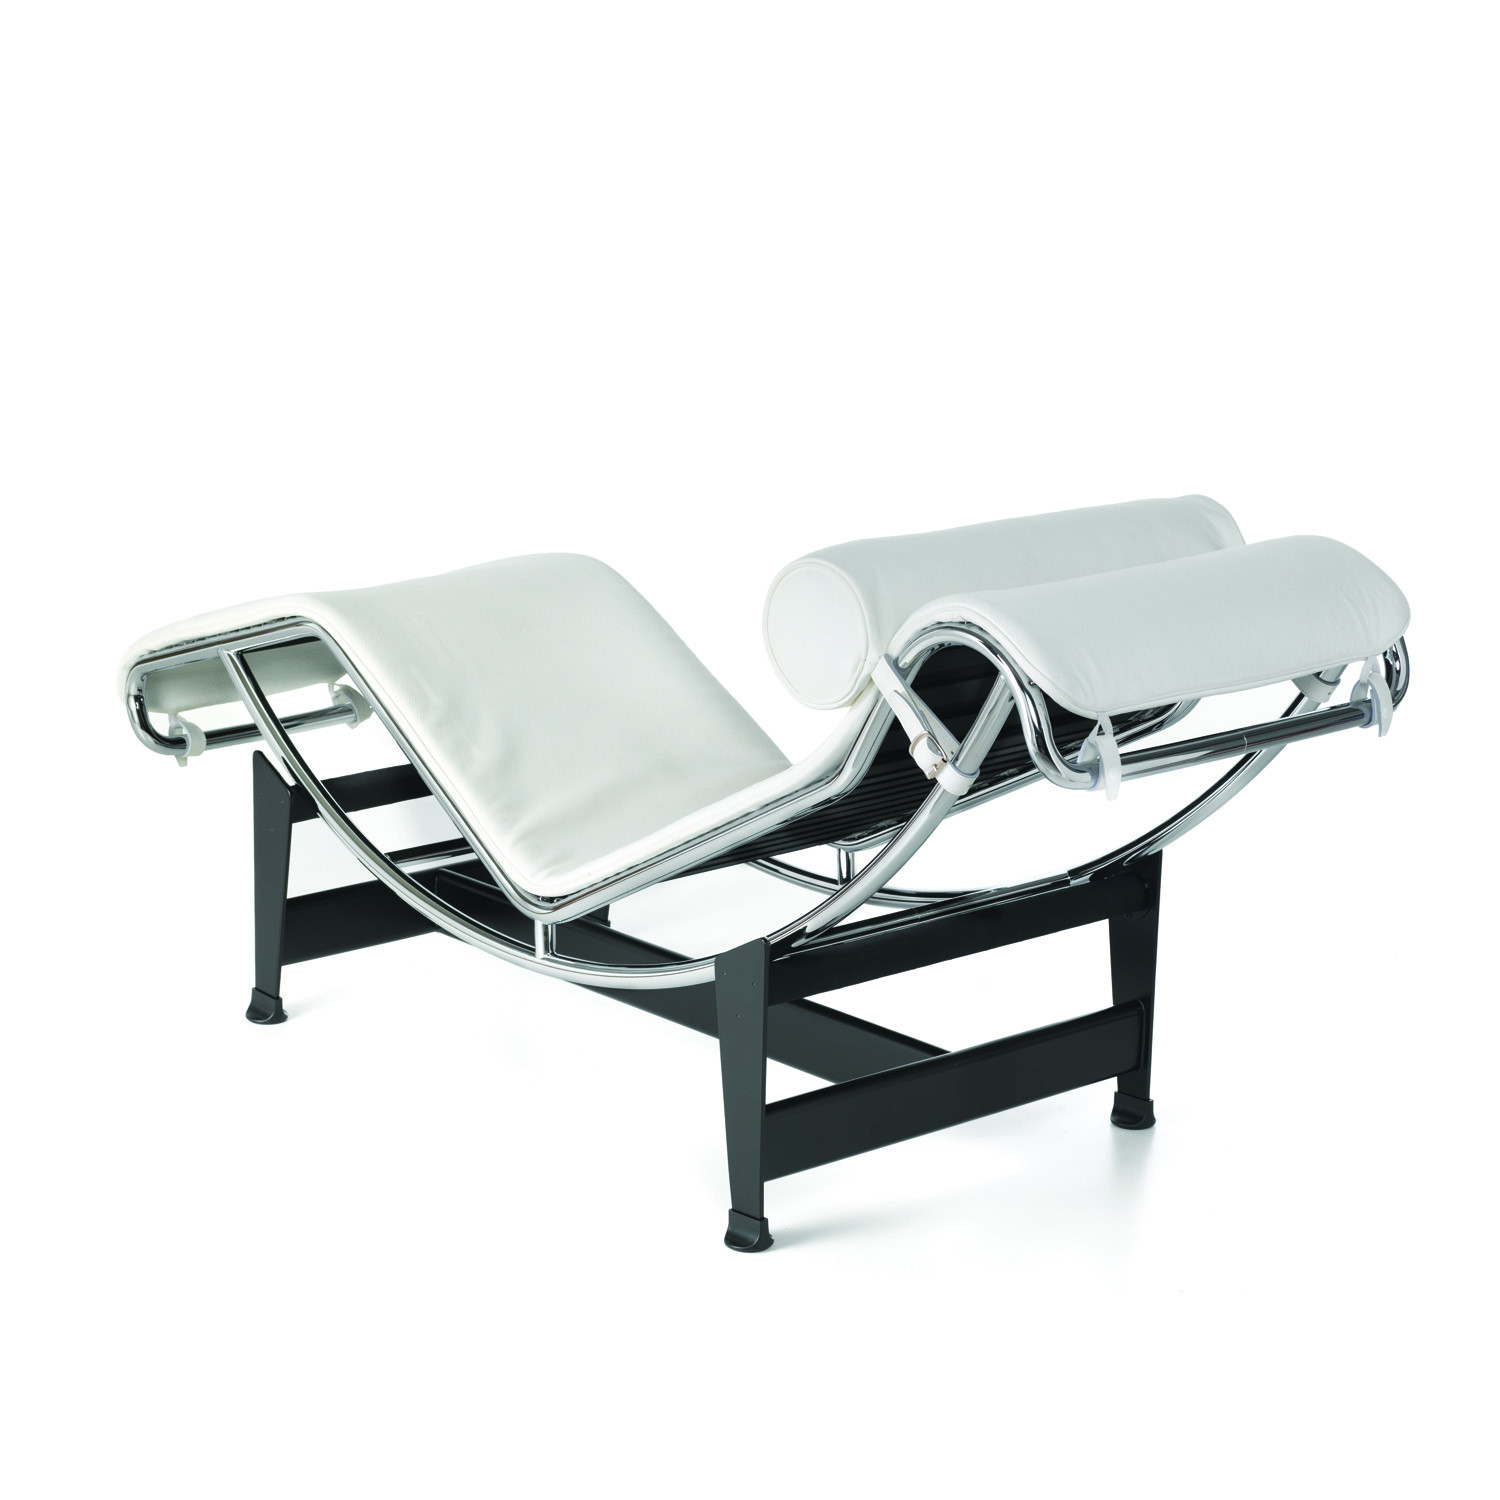 Lc4 chaise longue modern designer apres furniture for Chaise longue lc4 wikipedia